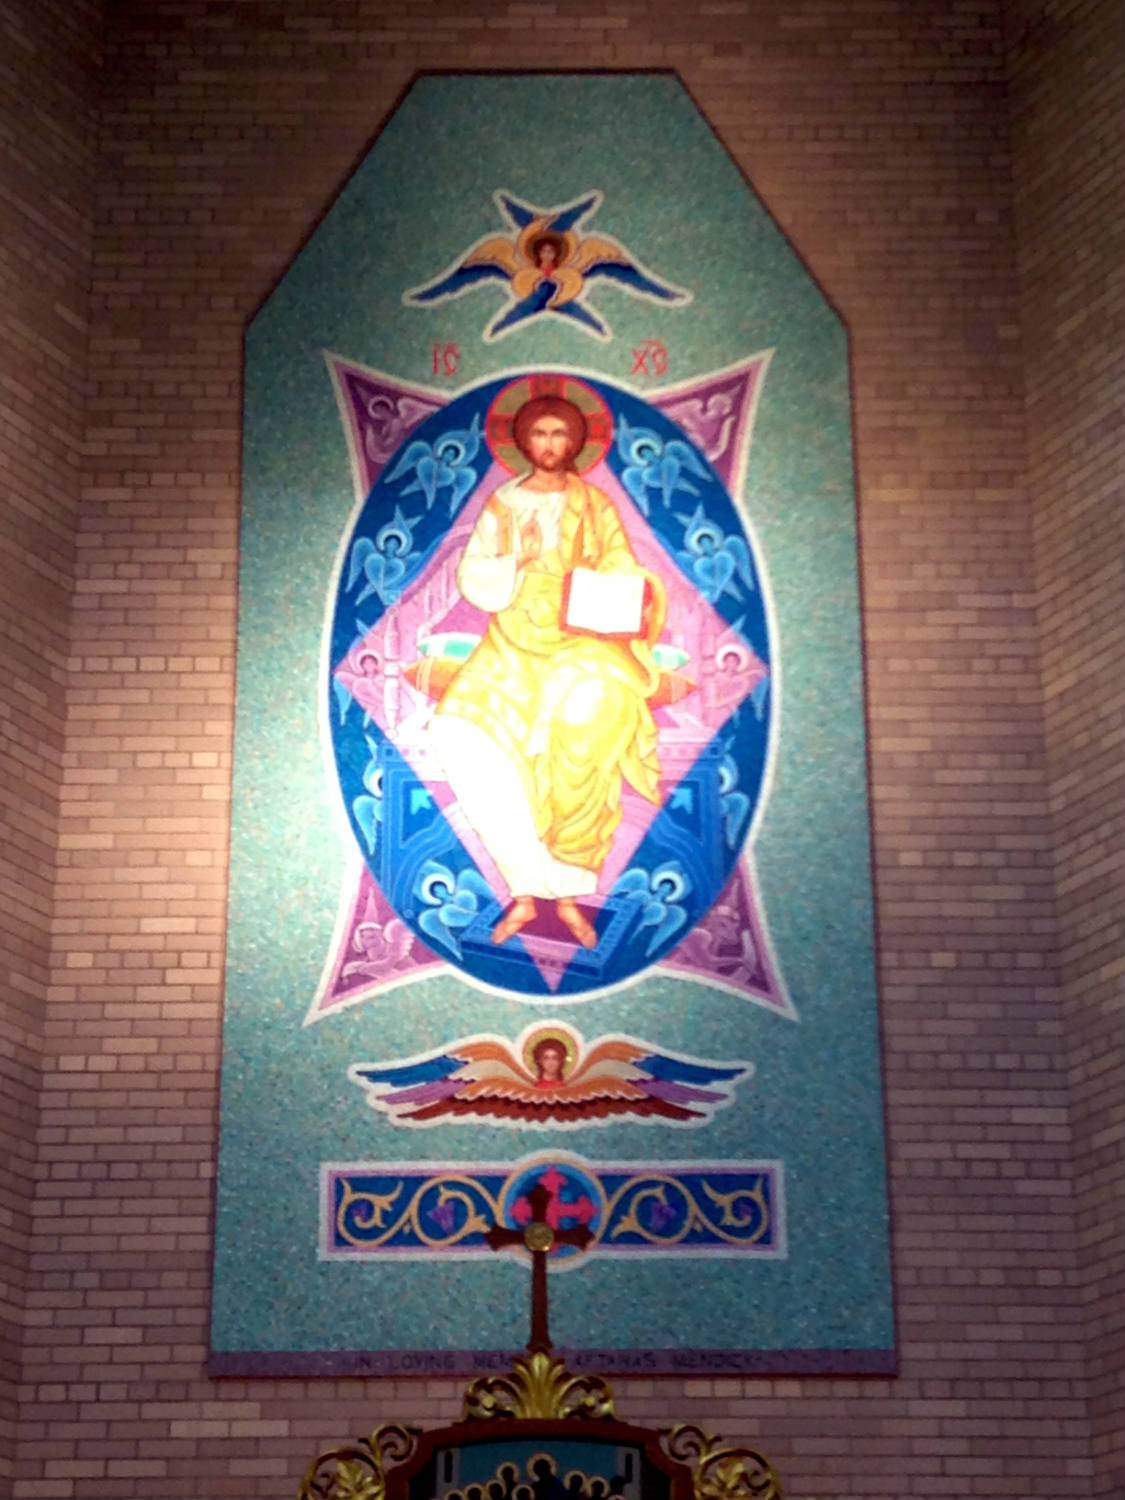 Tile Mural Shrine in St. Josaphat's Church in Rochester, NY